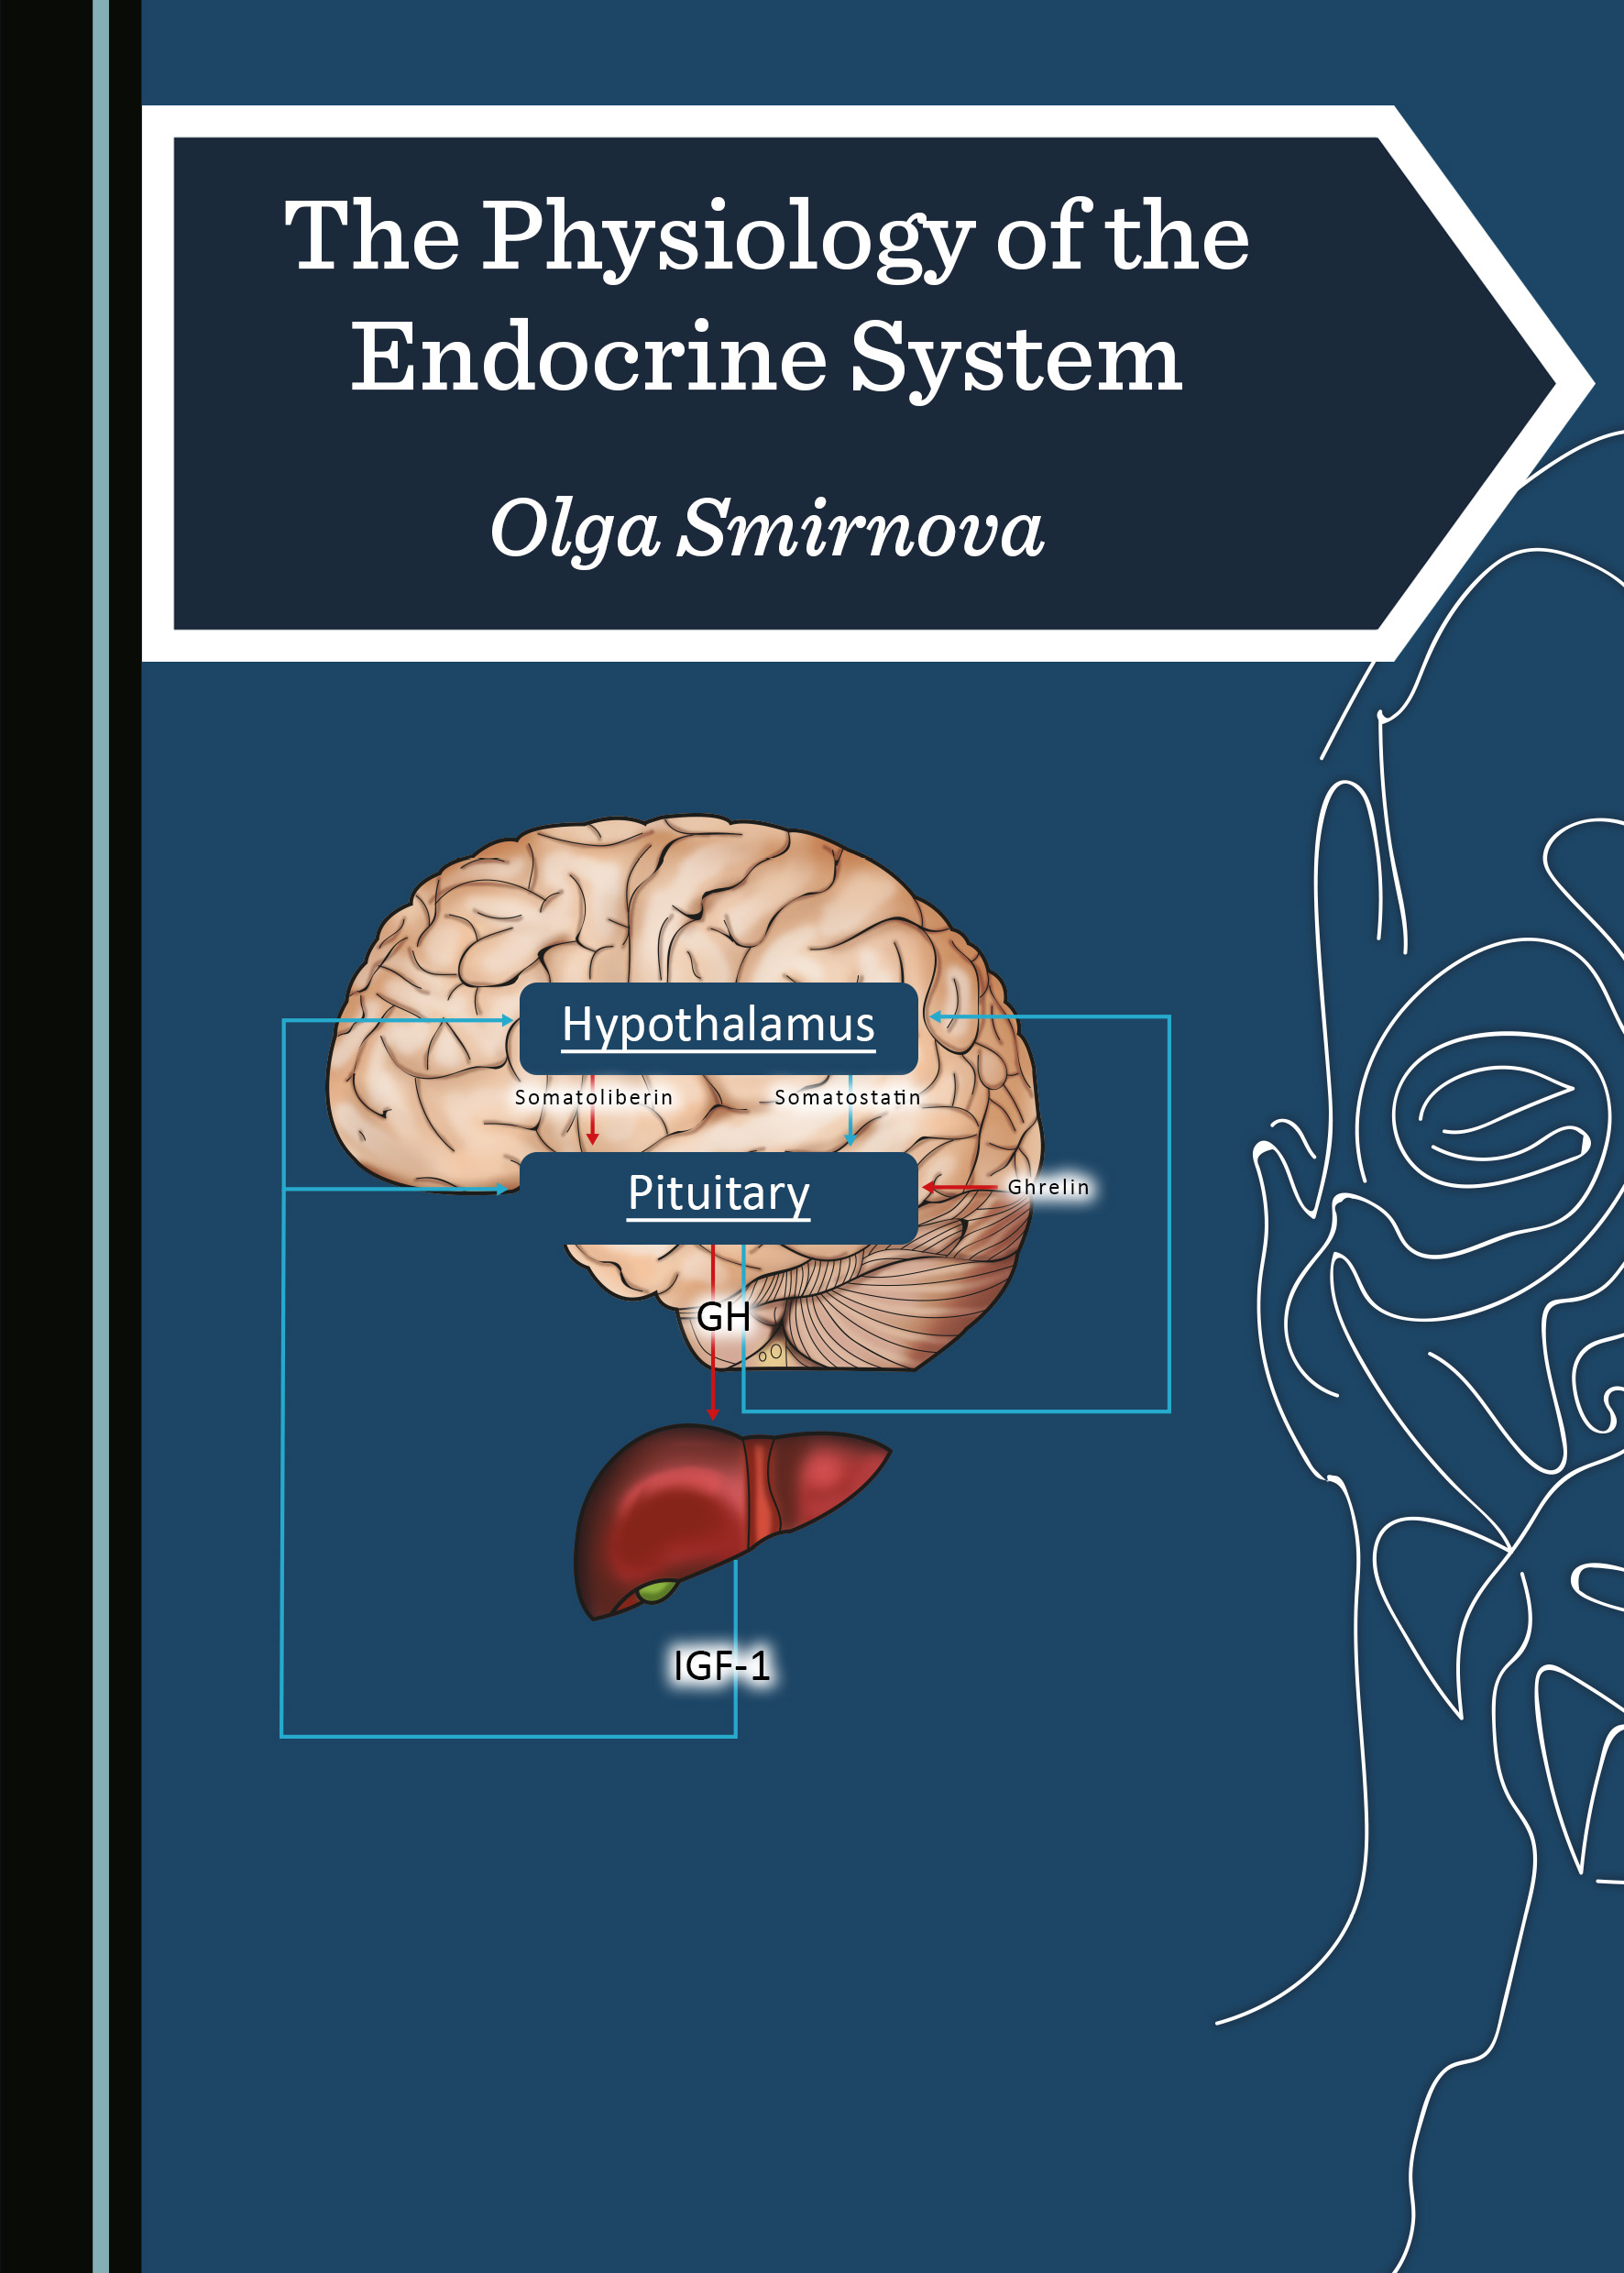 The Physiology of the Endocrine System